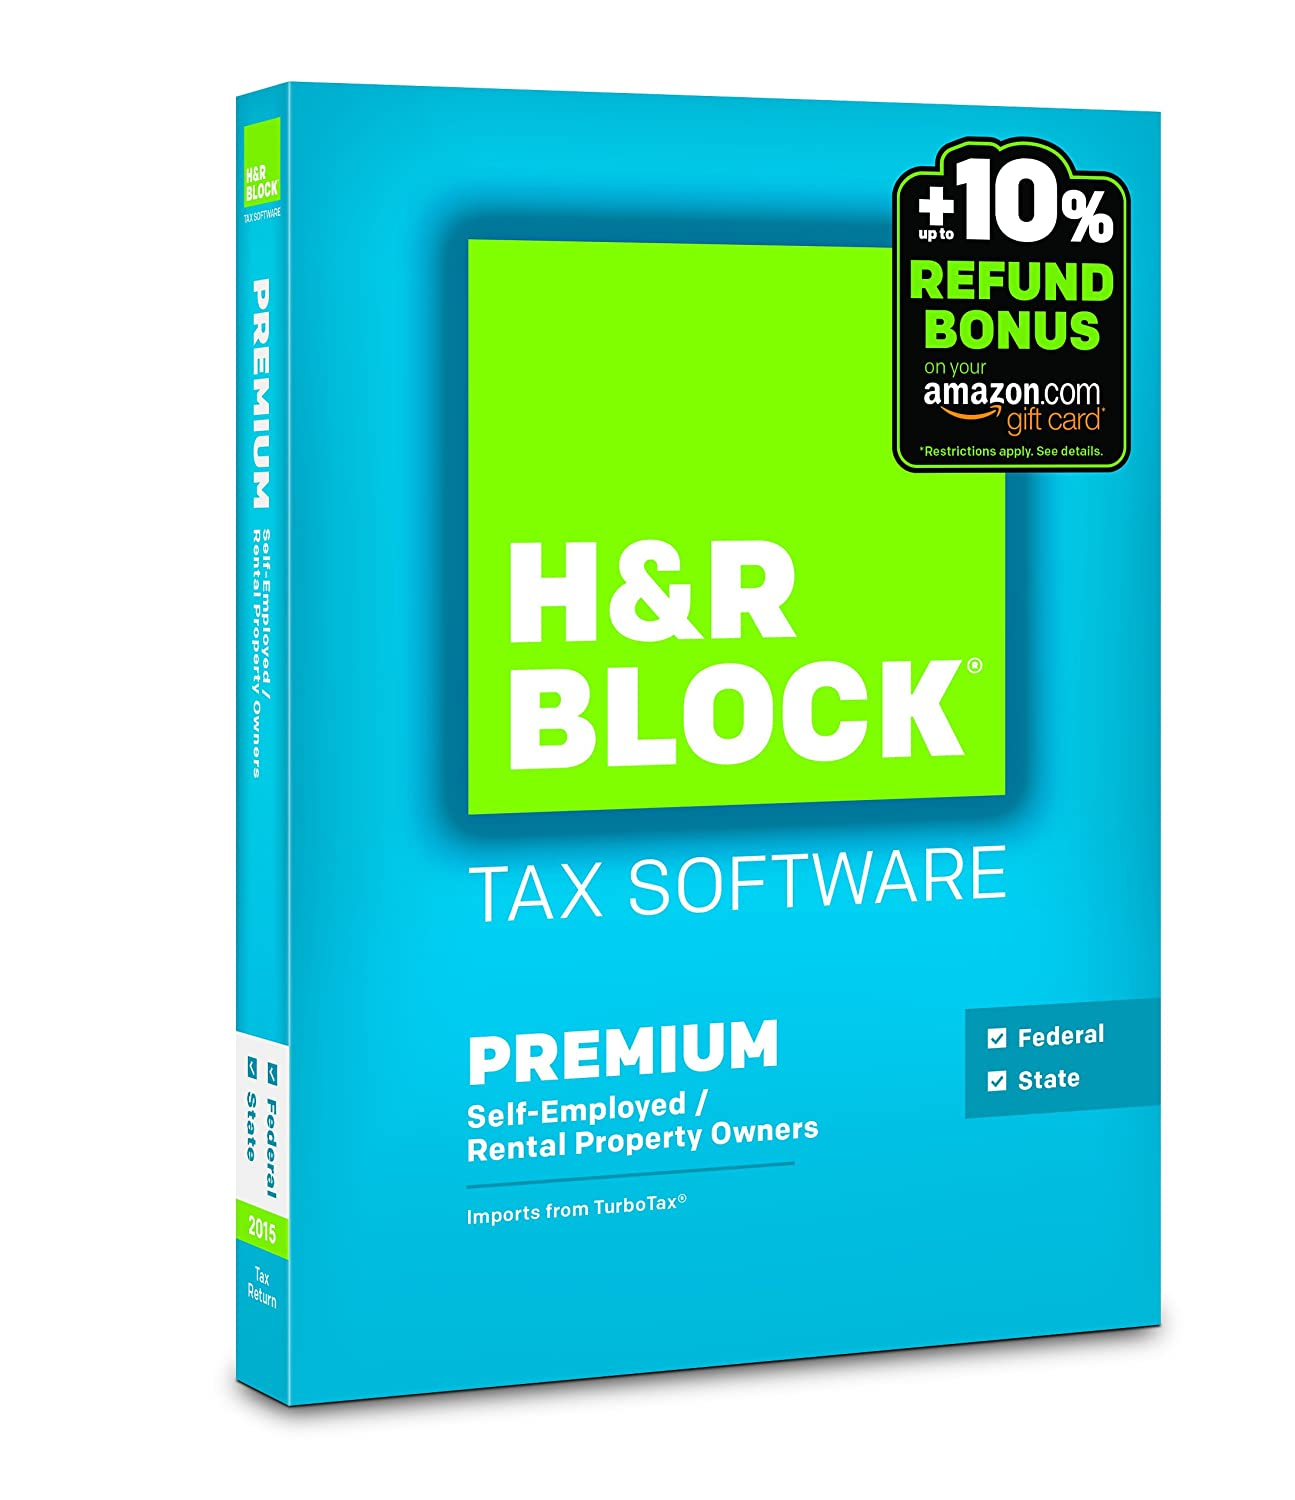 H&R Block 2015 Premium + State Tax Software + Refund Bonus Offer - PC/Mac Disc